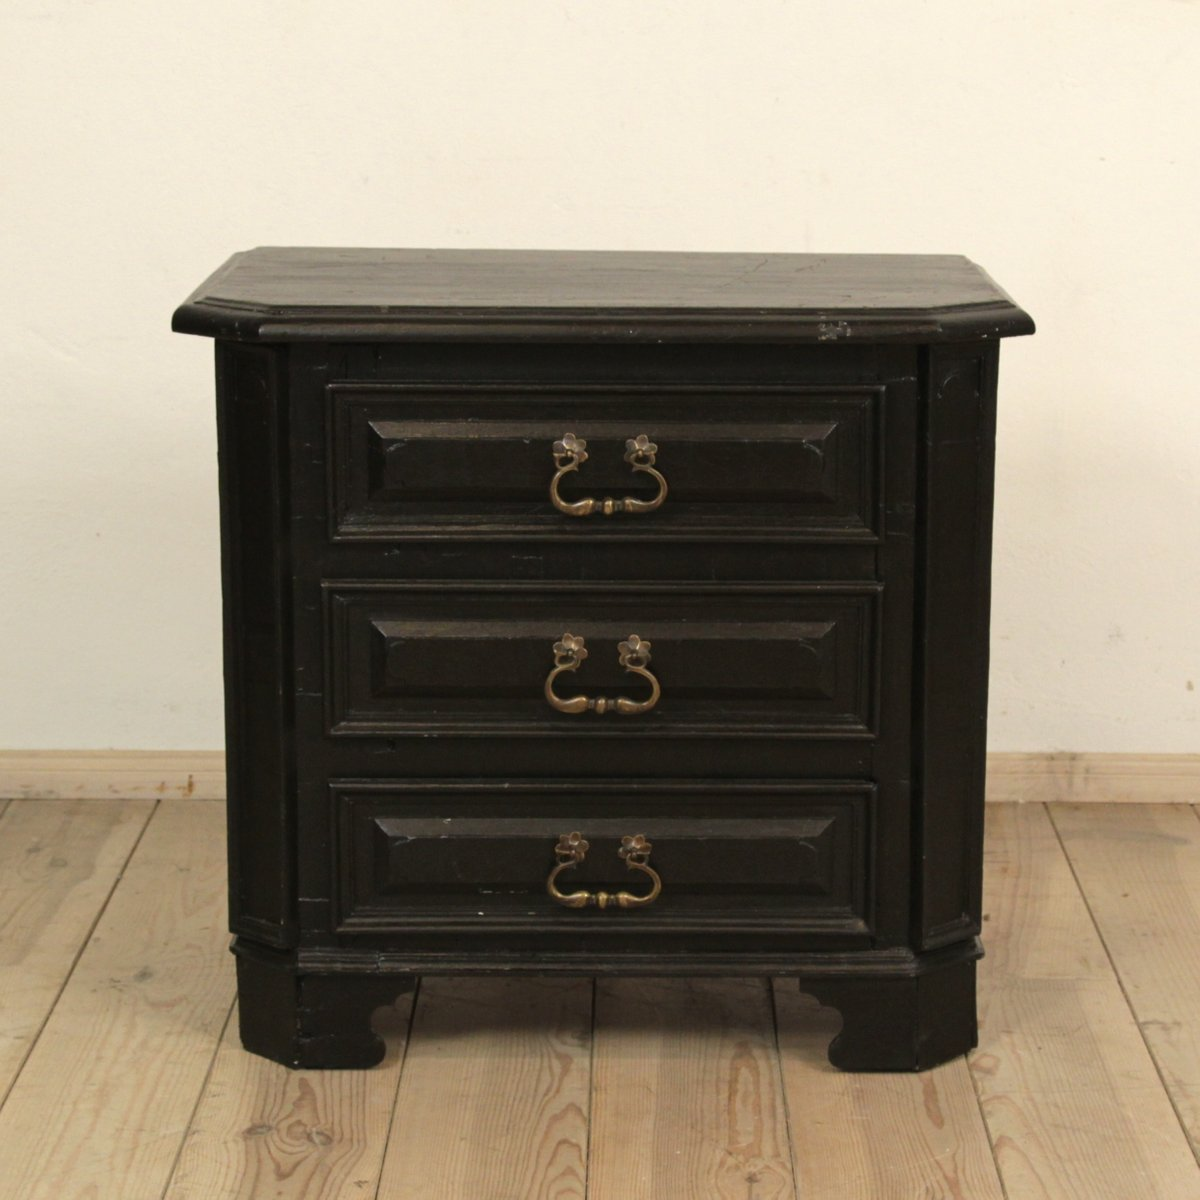 Small antique black lacquered wooden chest for sale